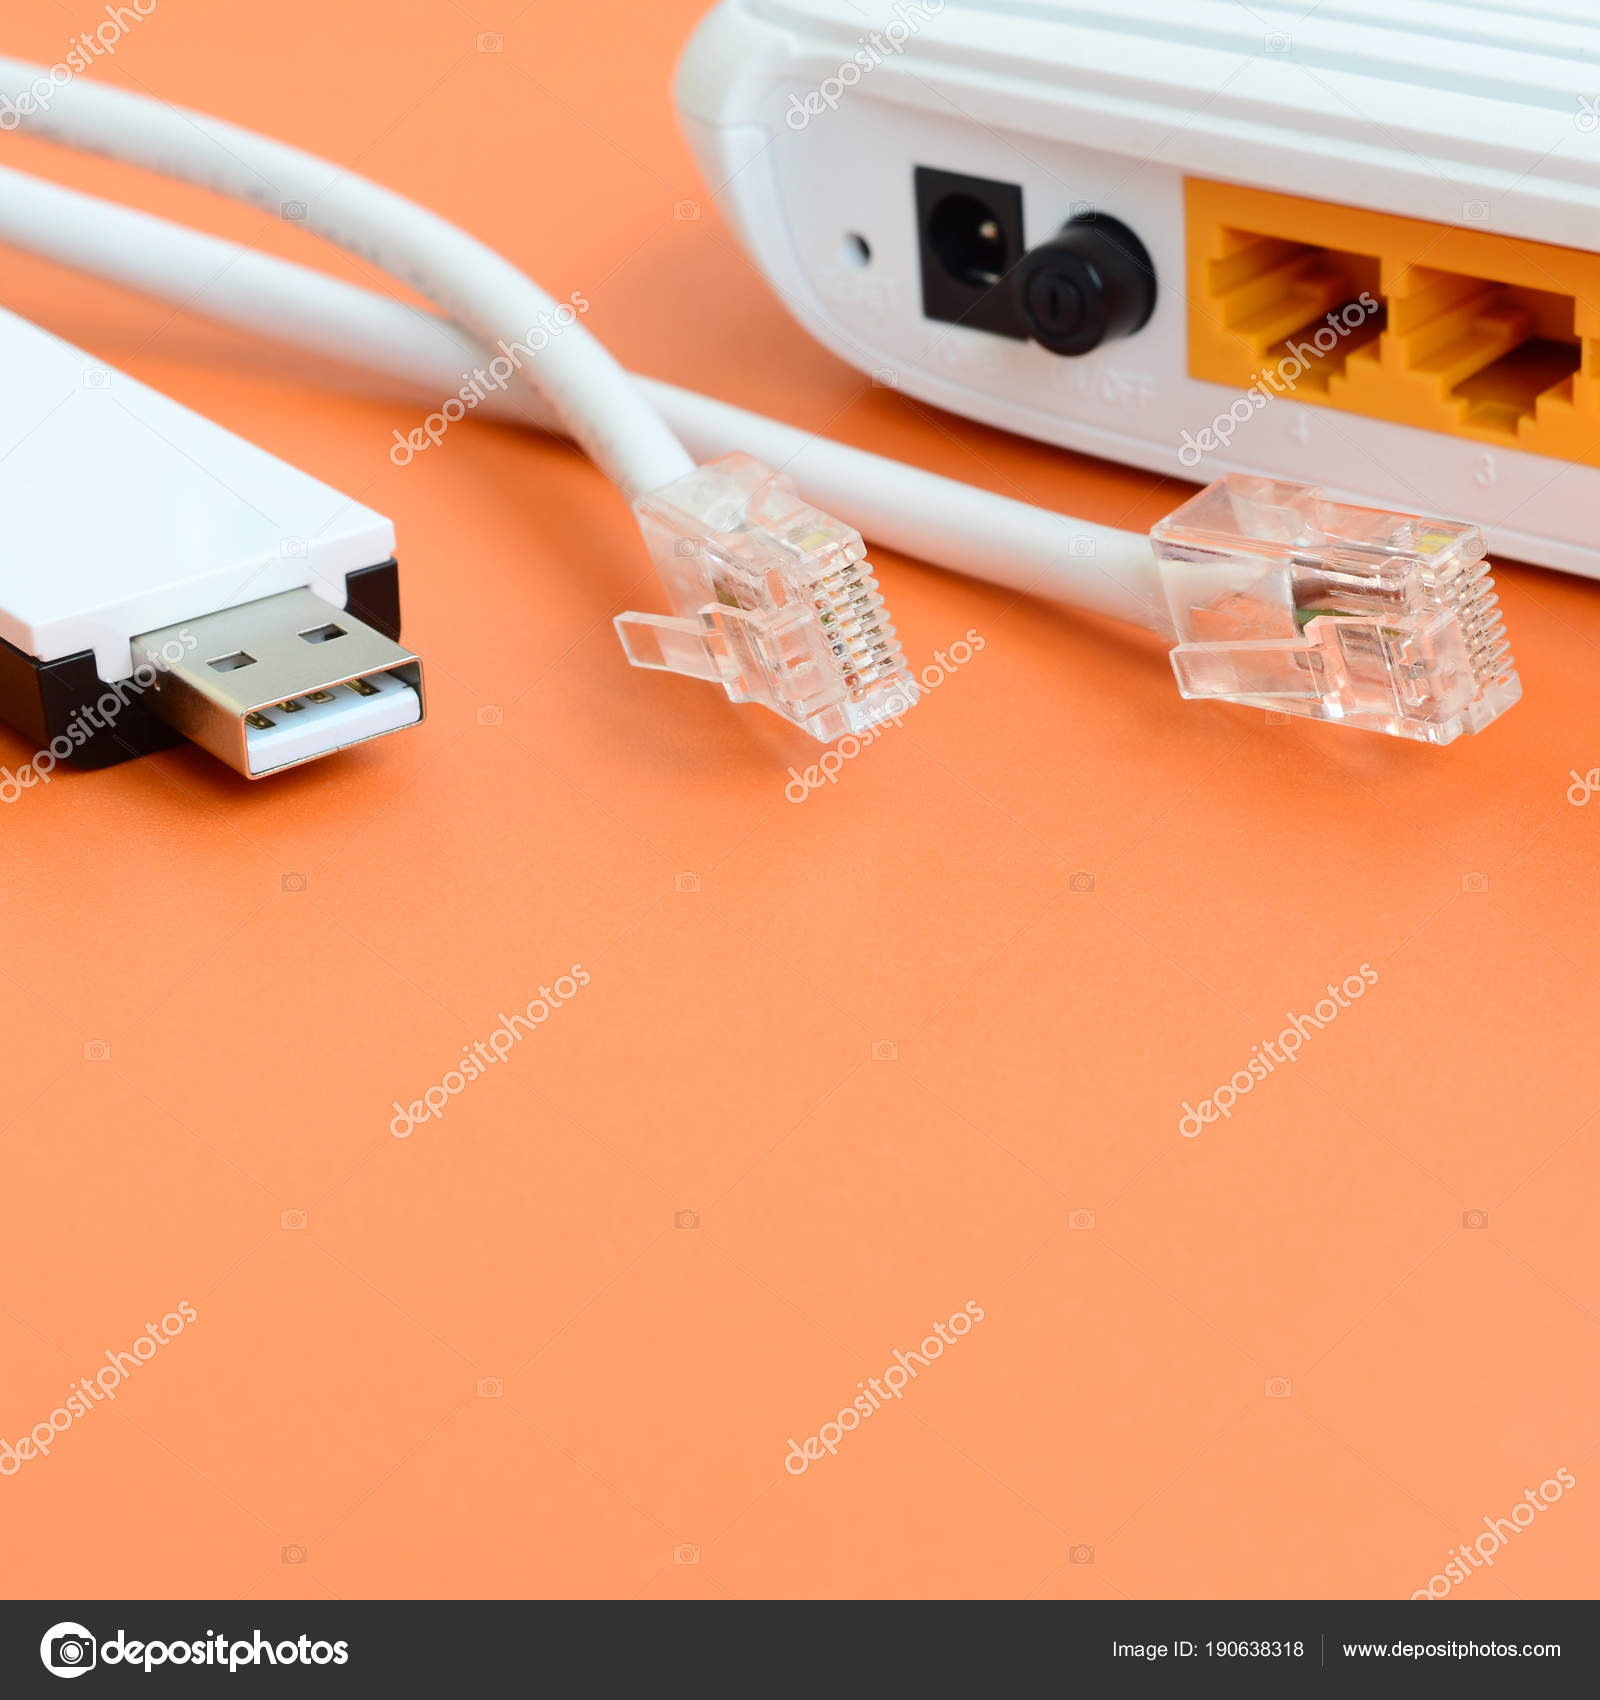 Internet Router Portable Usb Adapter Cable Plugs Lie Bright Home Wiring Stock Photo